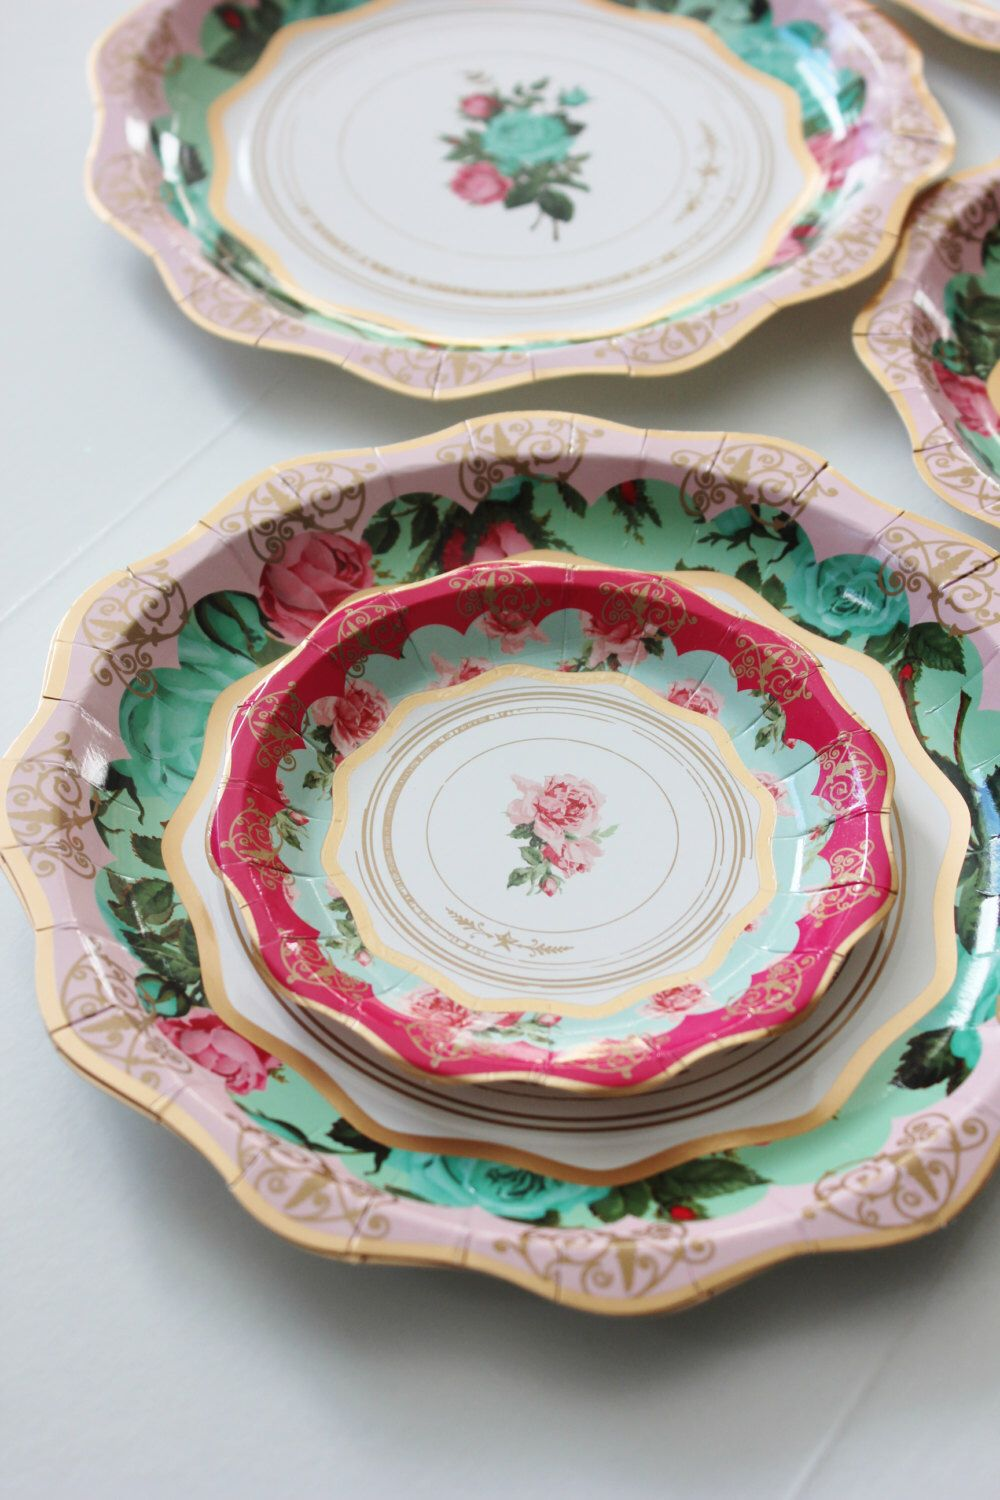 12 FLORAL TEA PARTY Mini Paper Plates Parisian Vintage Style Shabby Chic Garden Tea Time Mint Green Pink Seafoam Rose Roses French Paris & Pin by Kathy Henley on Birthday Party ideas | Pinterest | Shabby ...